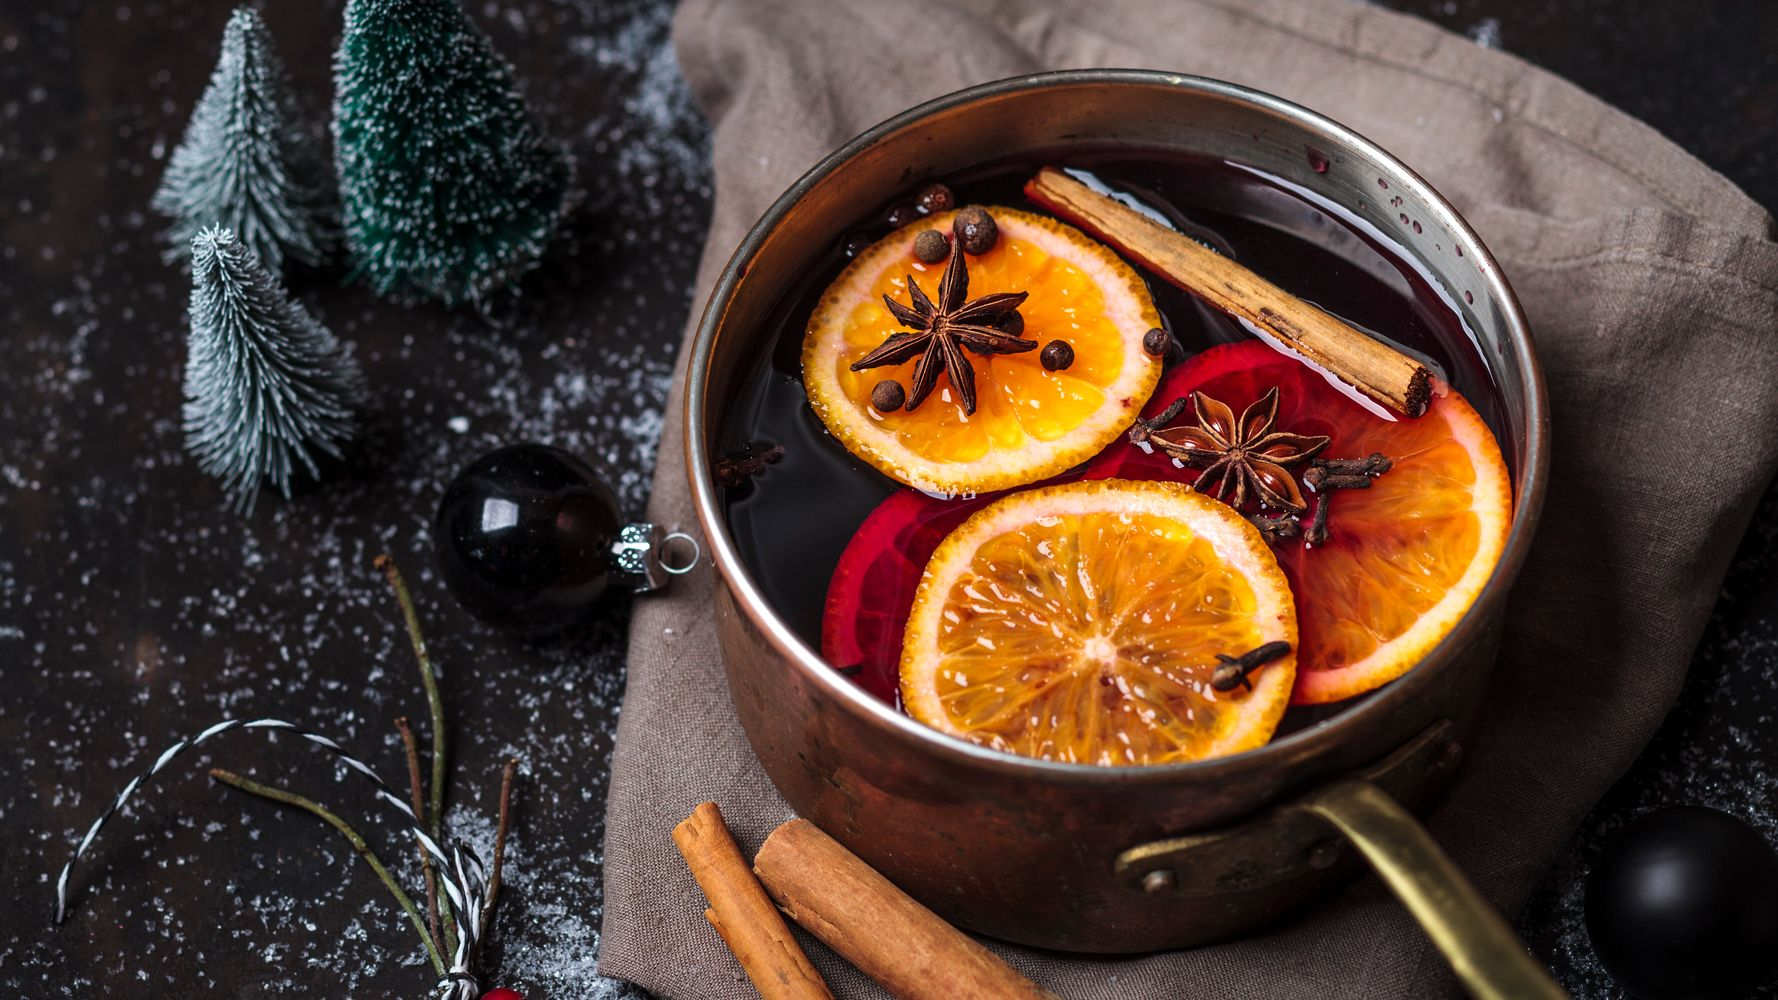 Holiday Drinks Without Alcohol That Everyone Can Enjoy